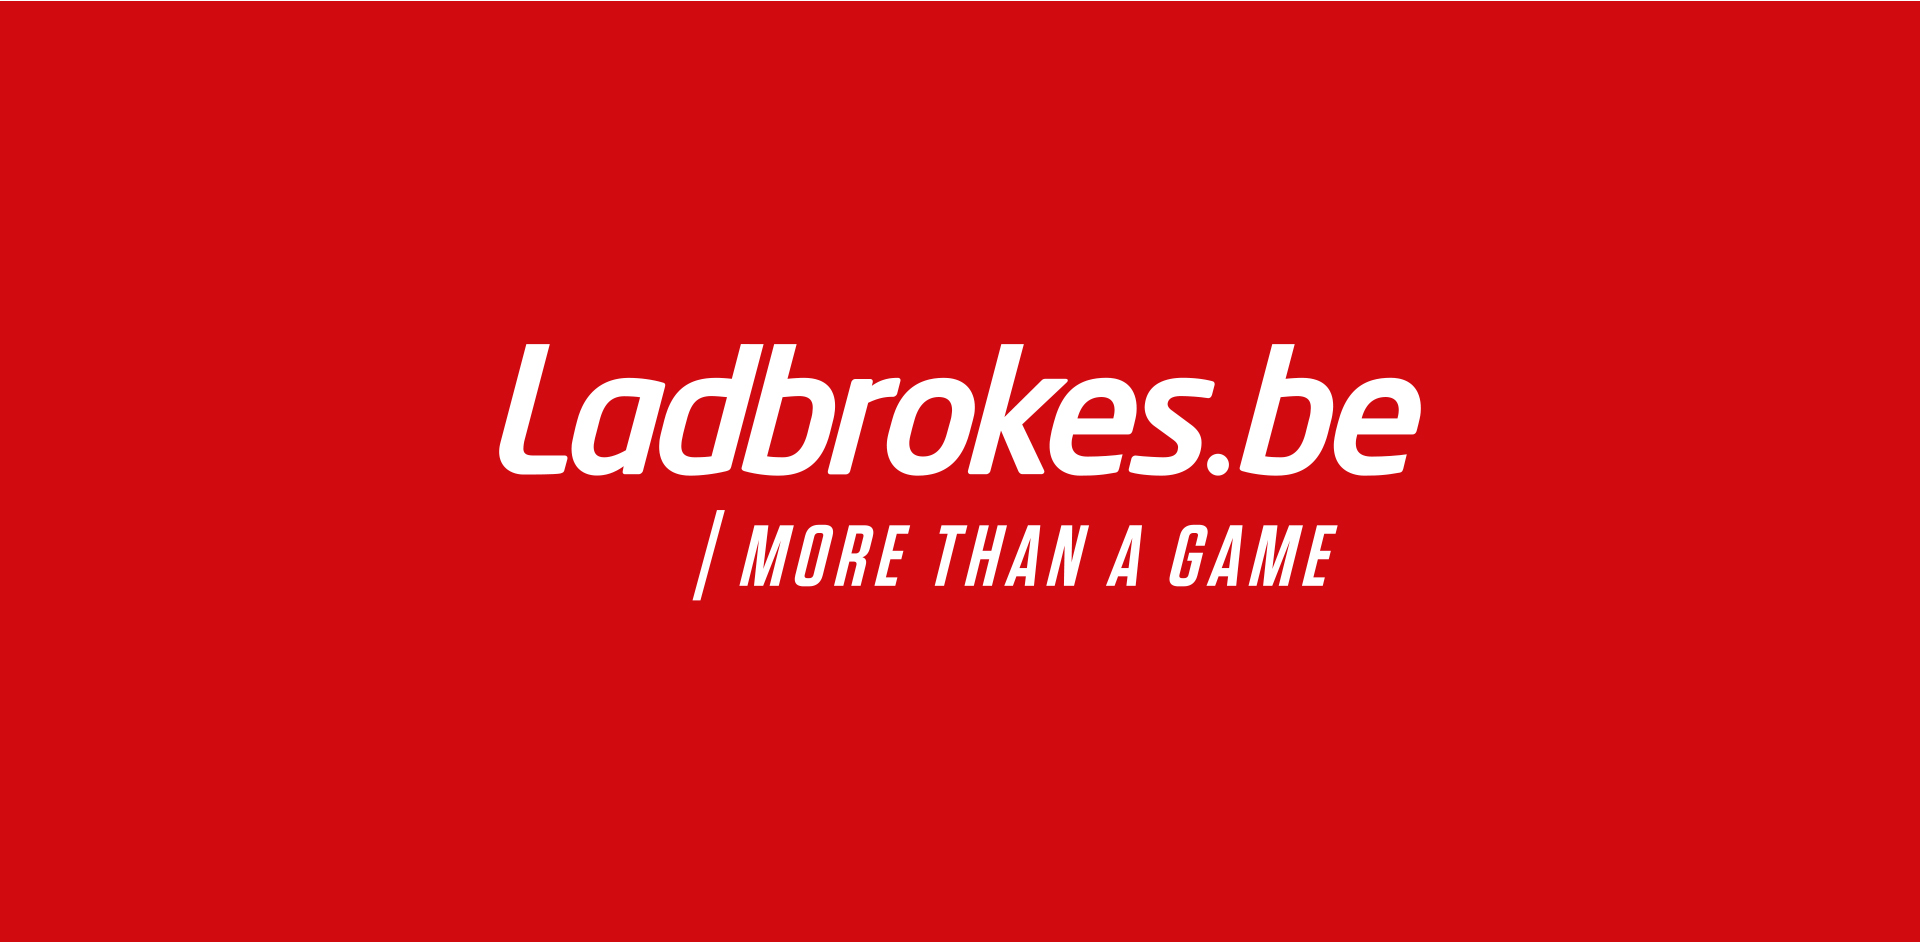 logo-ladbrokes-more-than-a-game